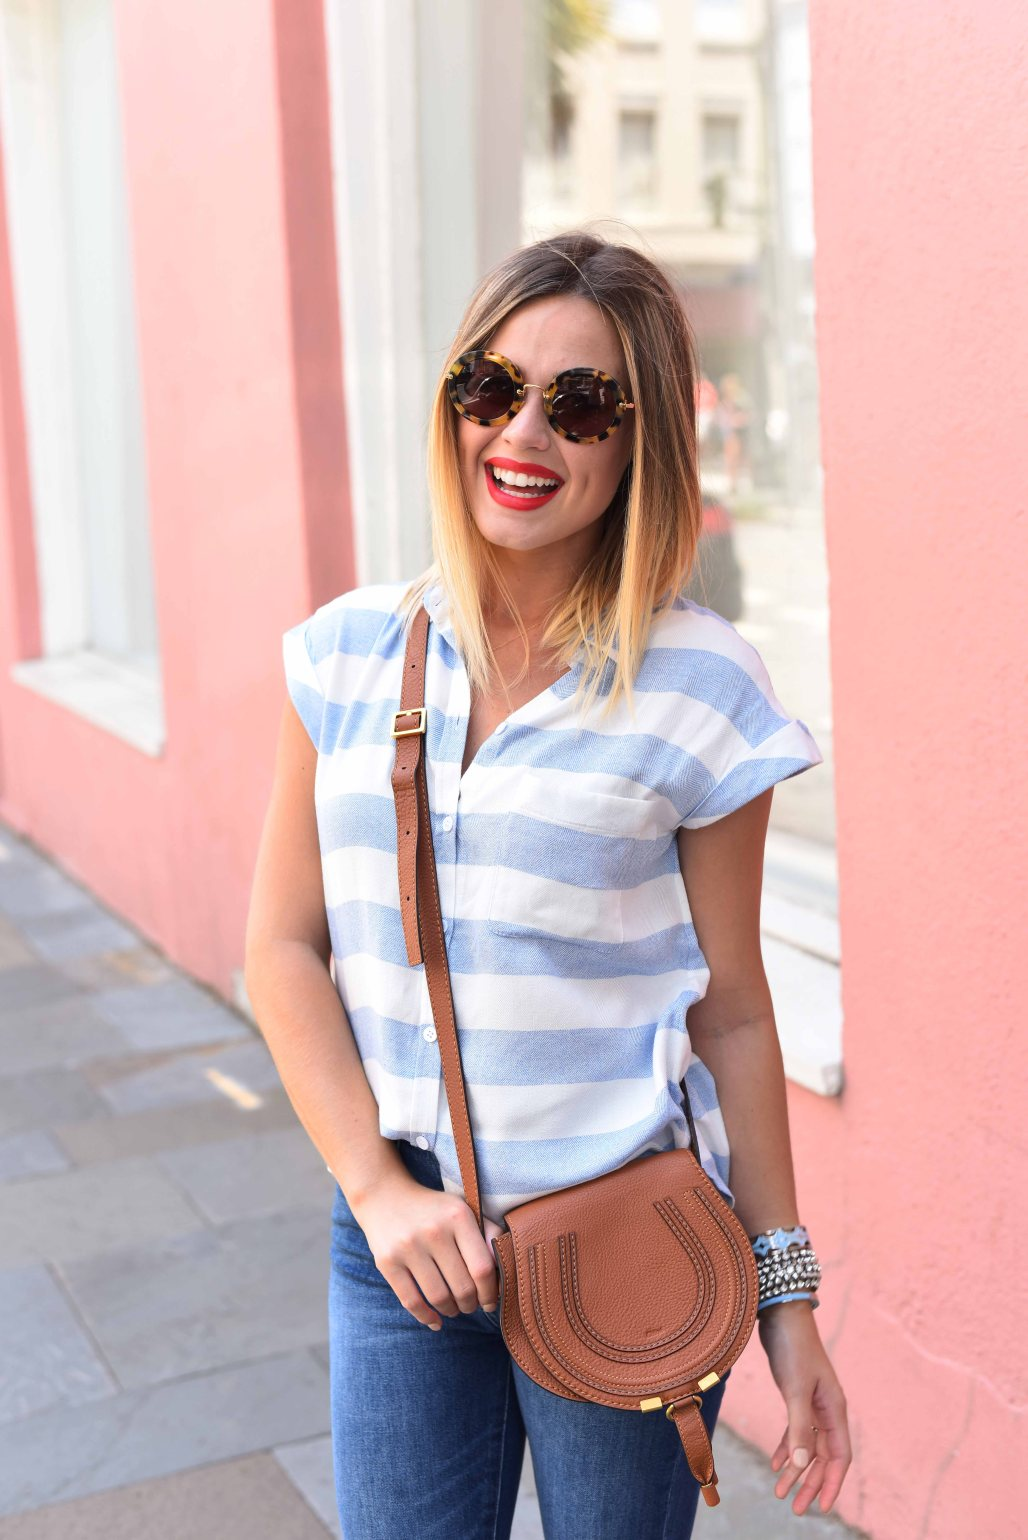 Cropped Denim look   Summer casual look   Tee and jeans look   Uptown with Elly Brown